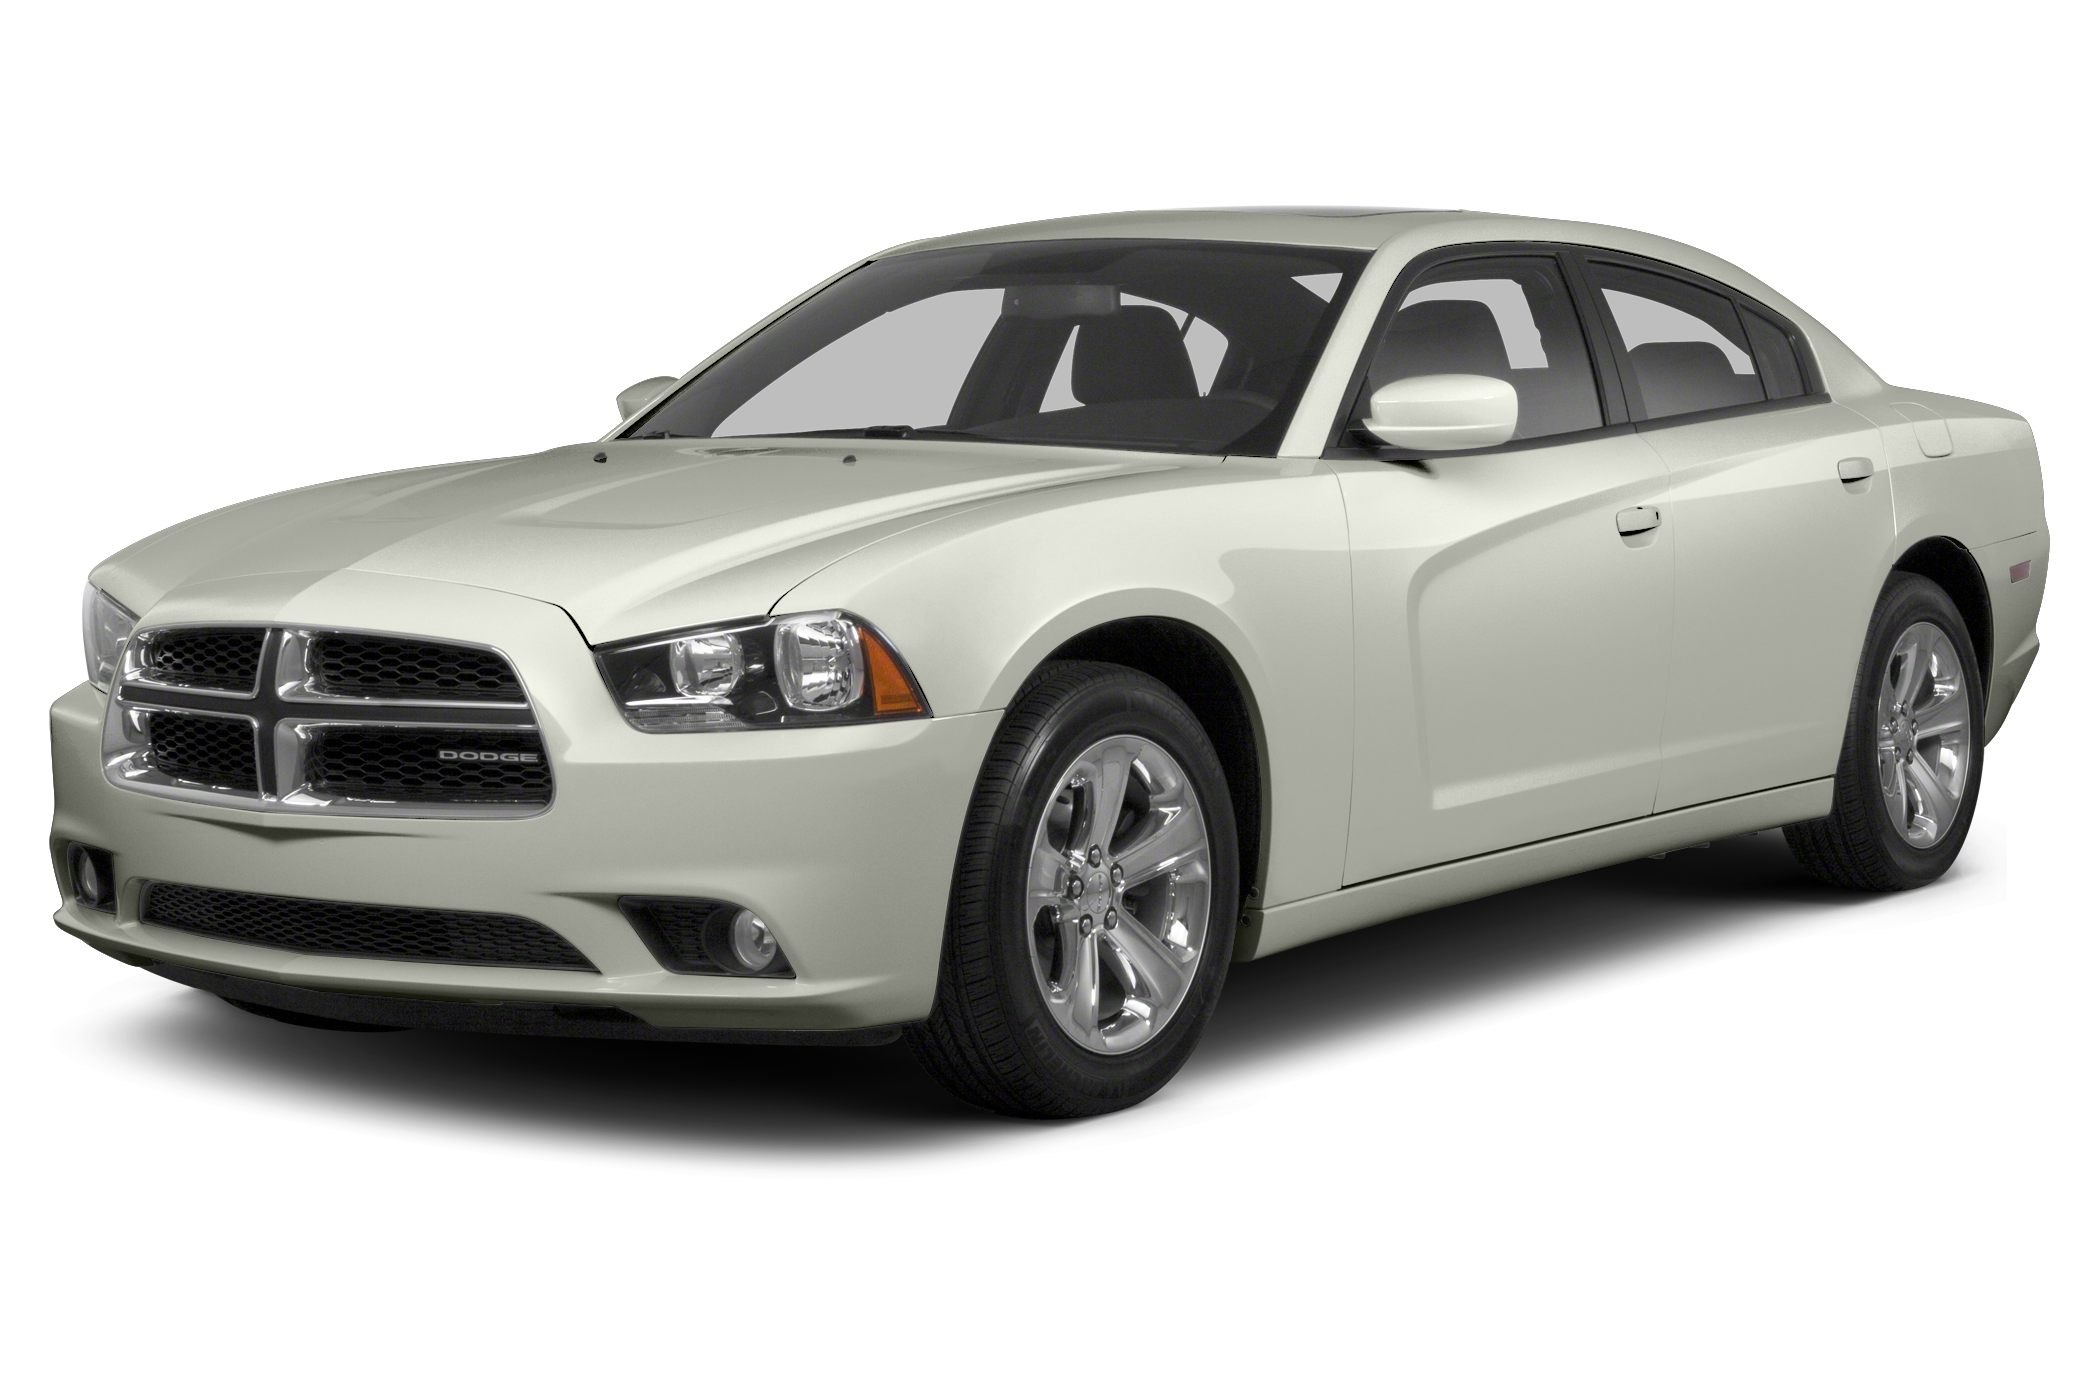 2013 dodge charger rt 4dr rear wheel drive sedan specs - Dodge Charger 2013 Rt